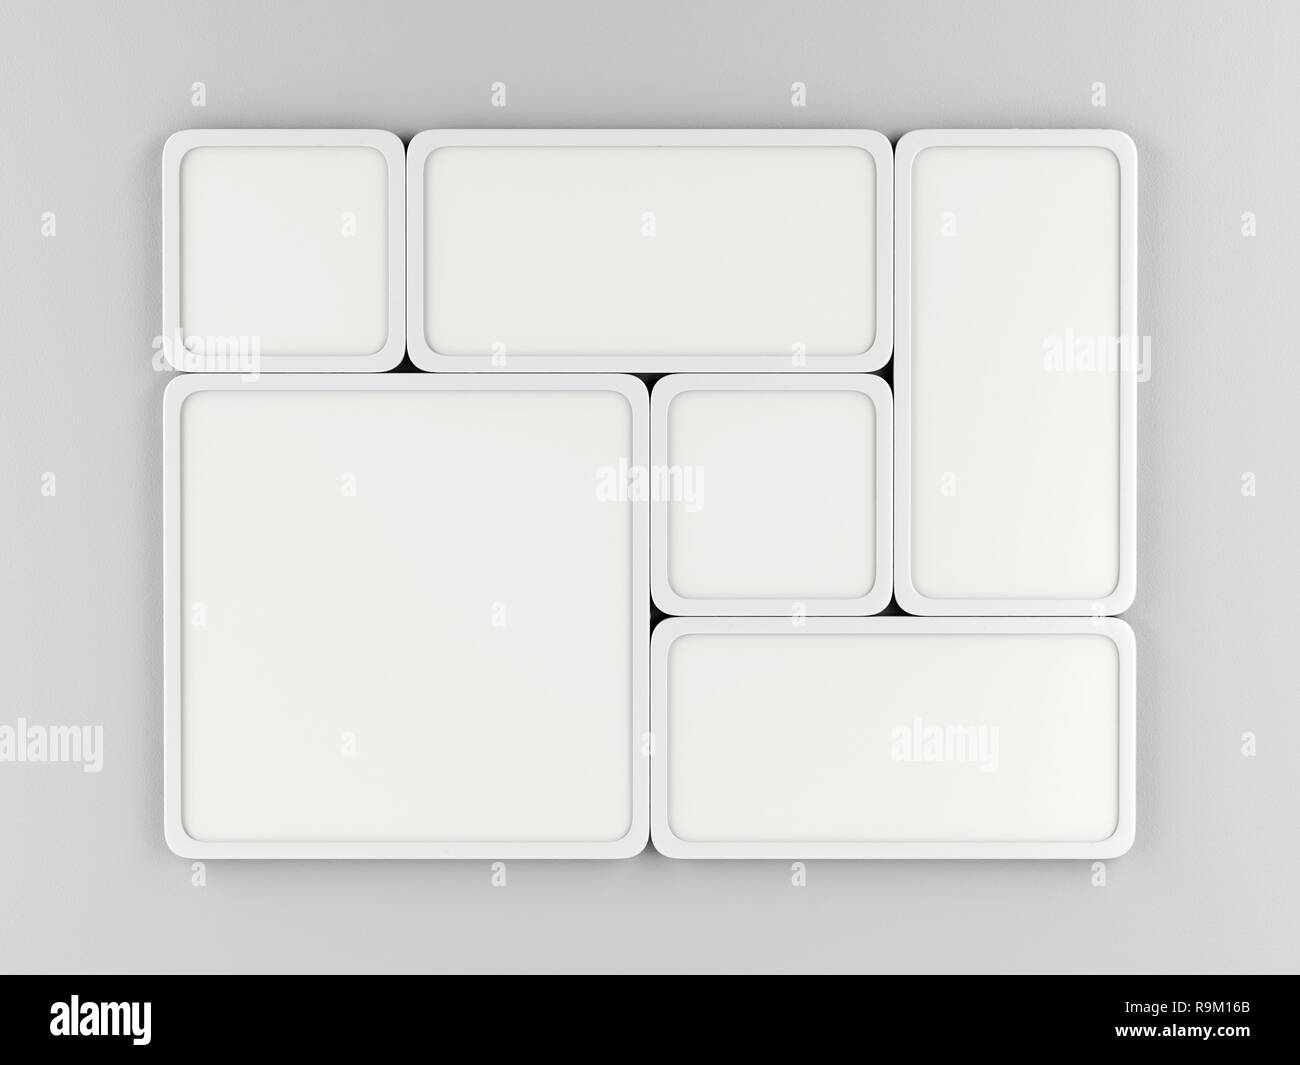 Group of white led panels on gray wall, front view - Stock Image